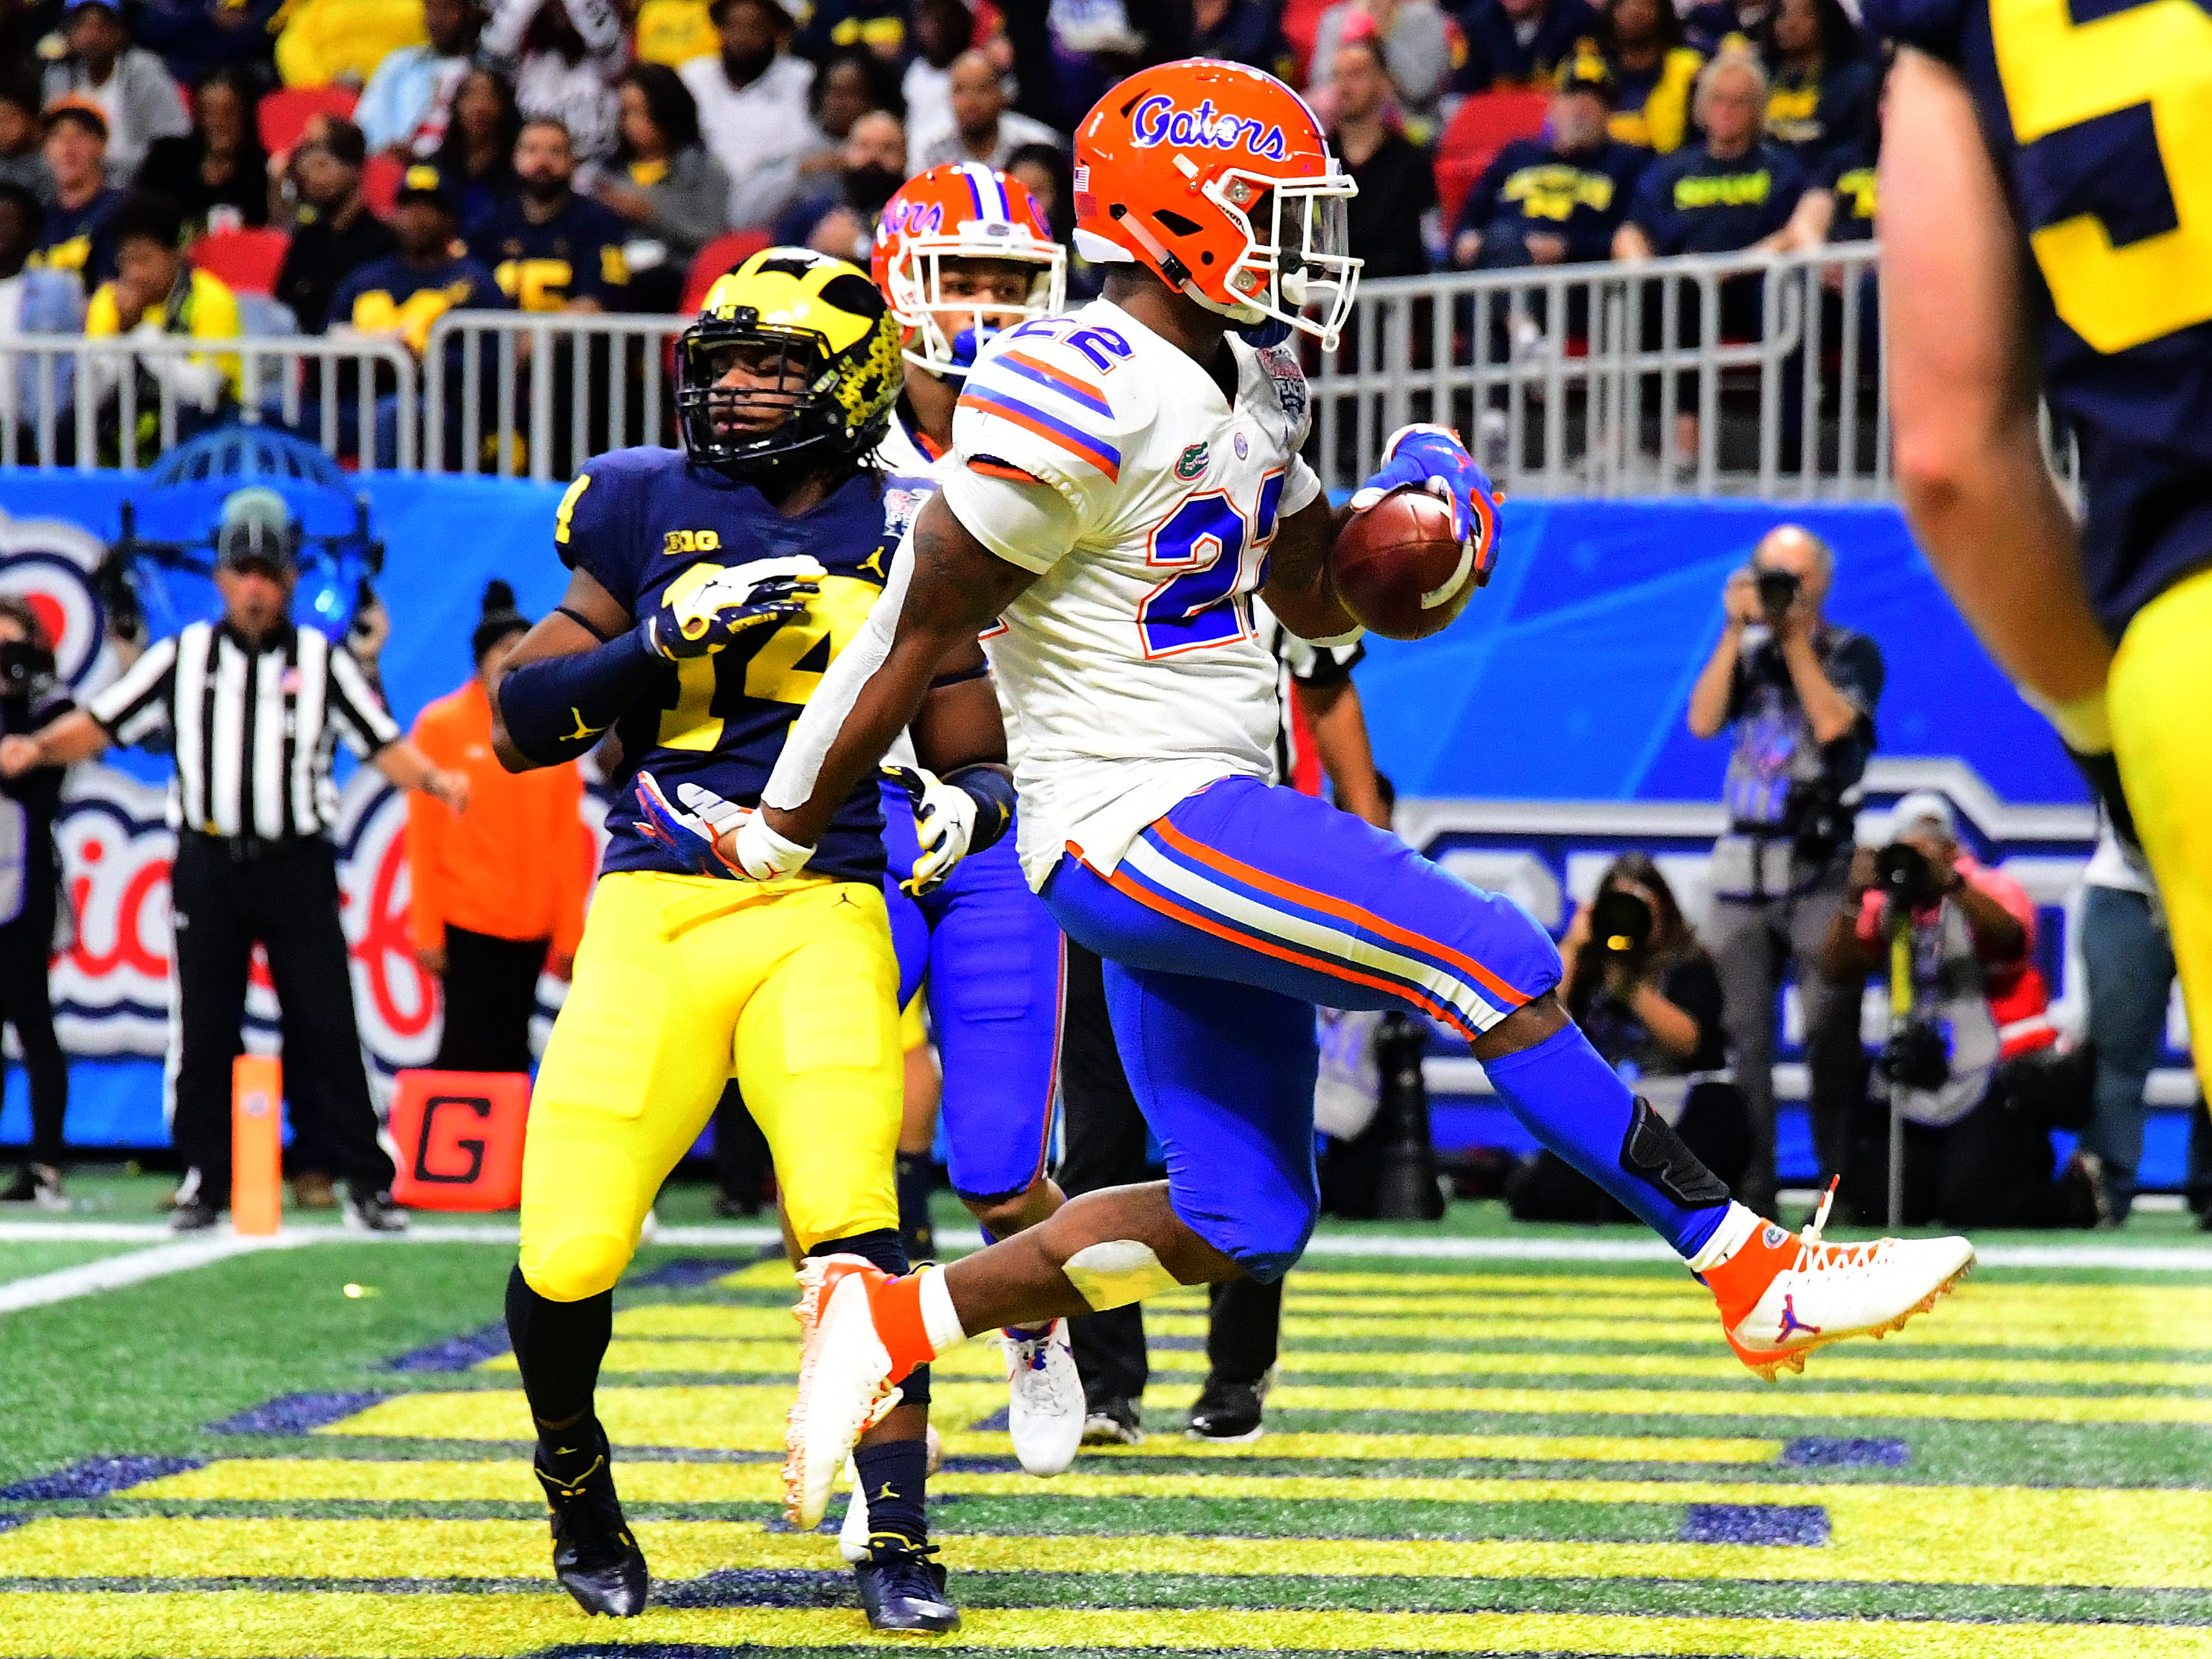 Florida running back Lamical Perine scores a third-quarter touchdown against Michigan during the Peach Bowl on Saturday, Dec. 29, 2018, in Atlanta.